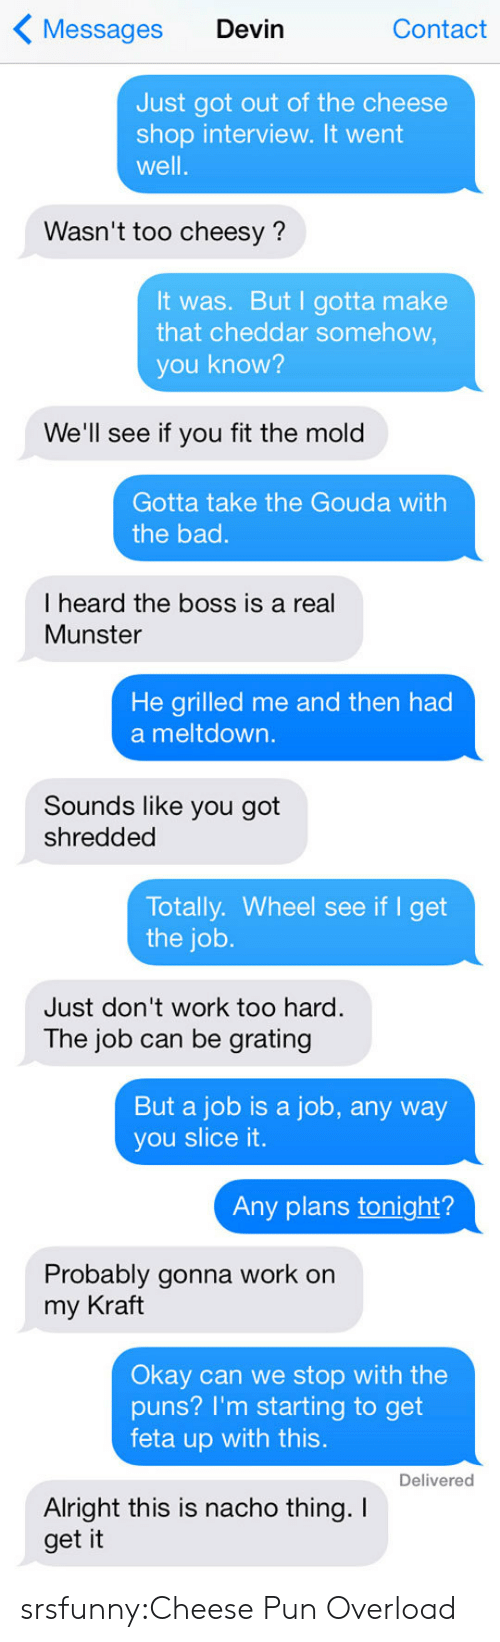 meltdown: Messages Devin  Contact  Just got out of the cheese  shop interview. It went  well.  Wasn't too cheesy?  It was. But I gotta make  that cheddar somehow  you know?  We'll see if you fit the mold  Gotta take the Gouda with  the bad.  I heard the boss is a real  Munster  He arilled me and then had  a meltdown.  Sounds like you got  shredded  Totally. Wheel see if I get  the job.  Just don't work too hard.  The job can be grating  But a job is a job, any way  you slice it.  Any plans tonight?  Probably gonna work on  my Kraft  Okay can we stop with the  puns? I'm starting to get  feta up with this  Delivered  Alright this is nacho thing. I  get it srsfunny:Cheese Pun Overload